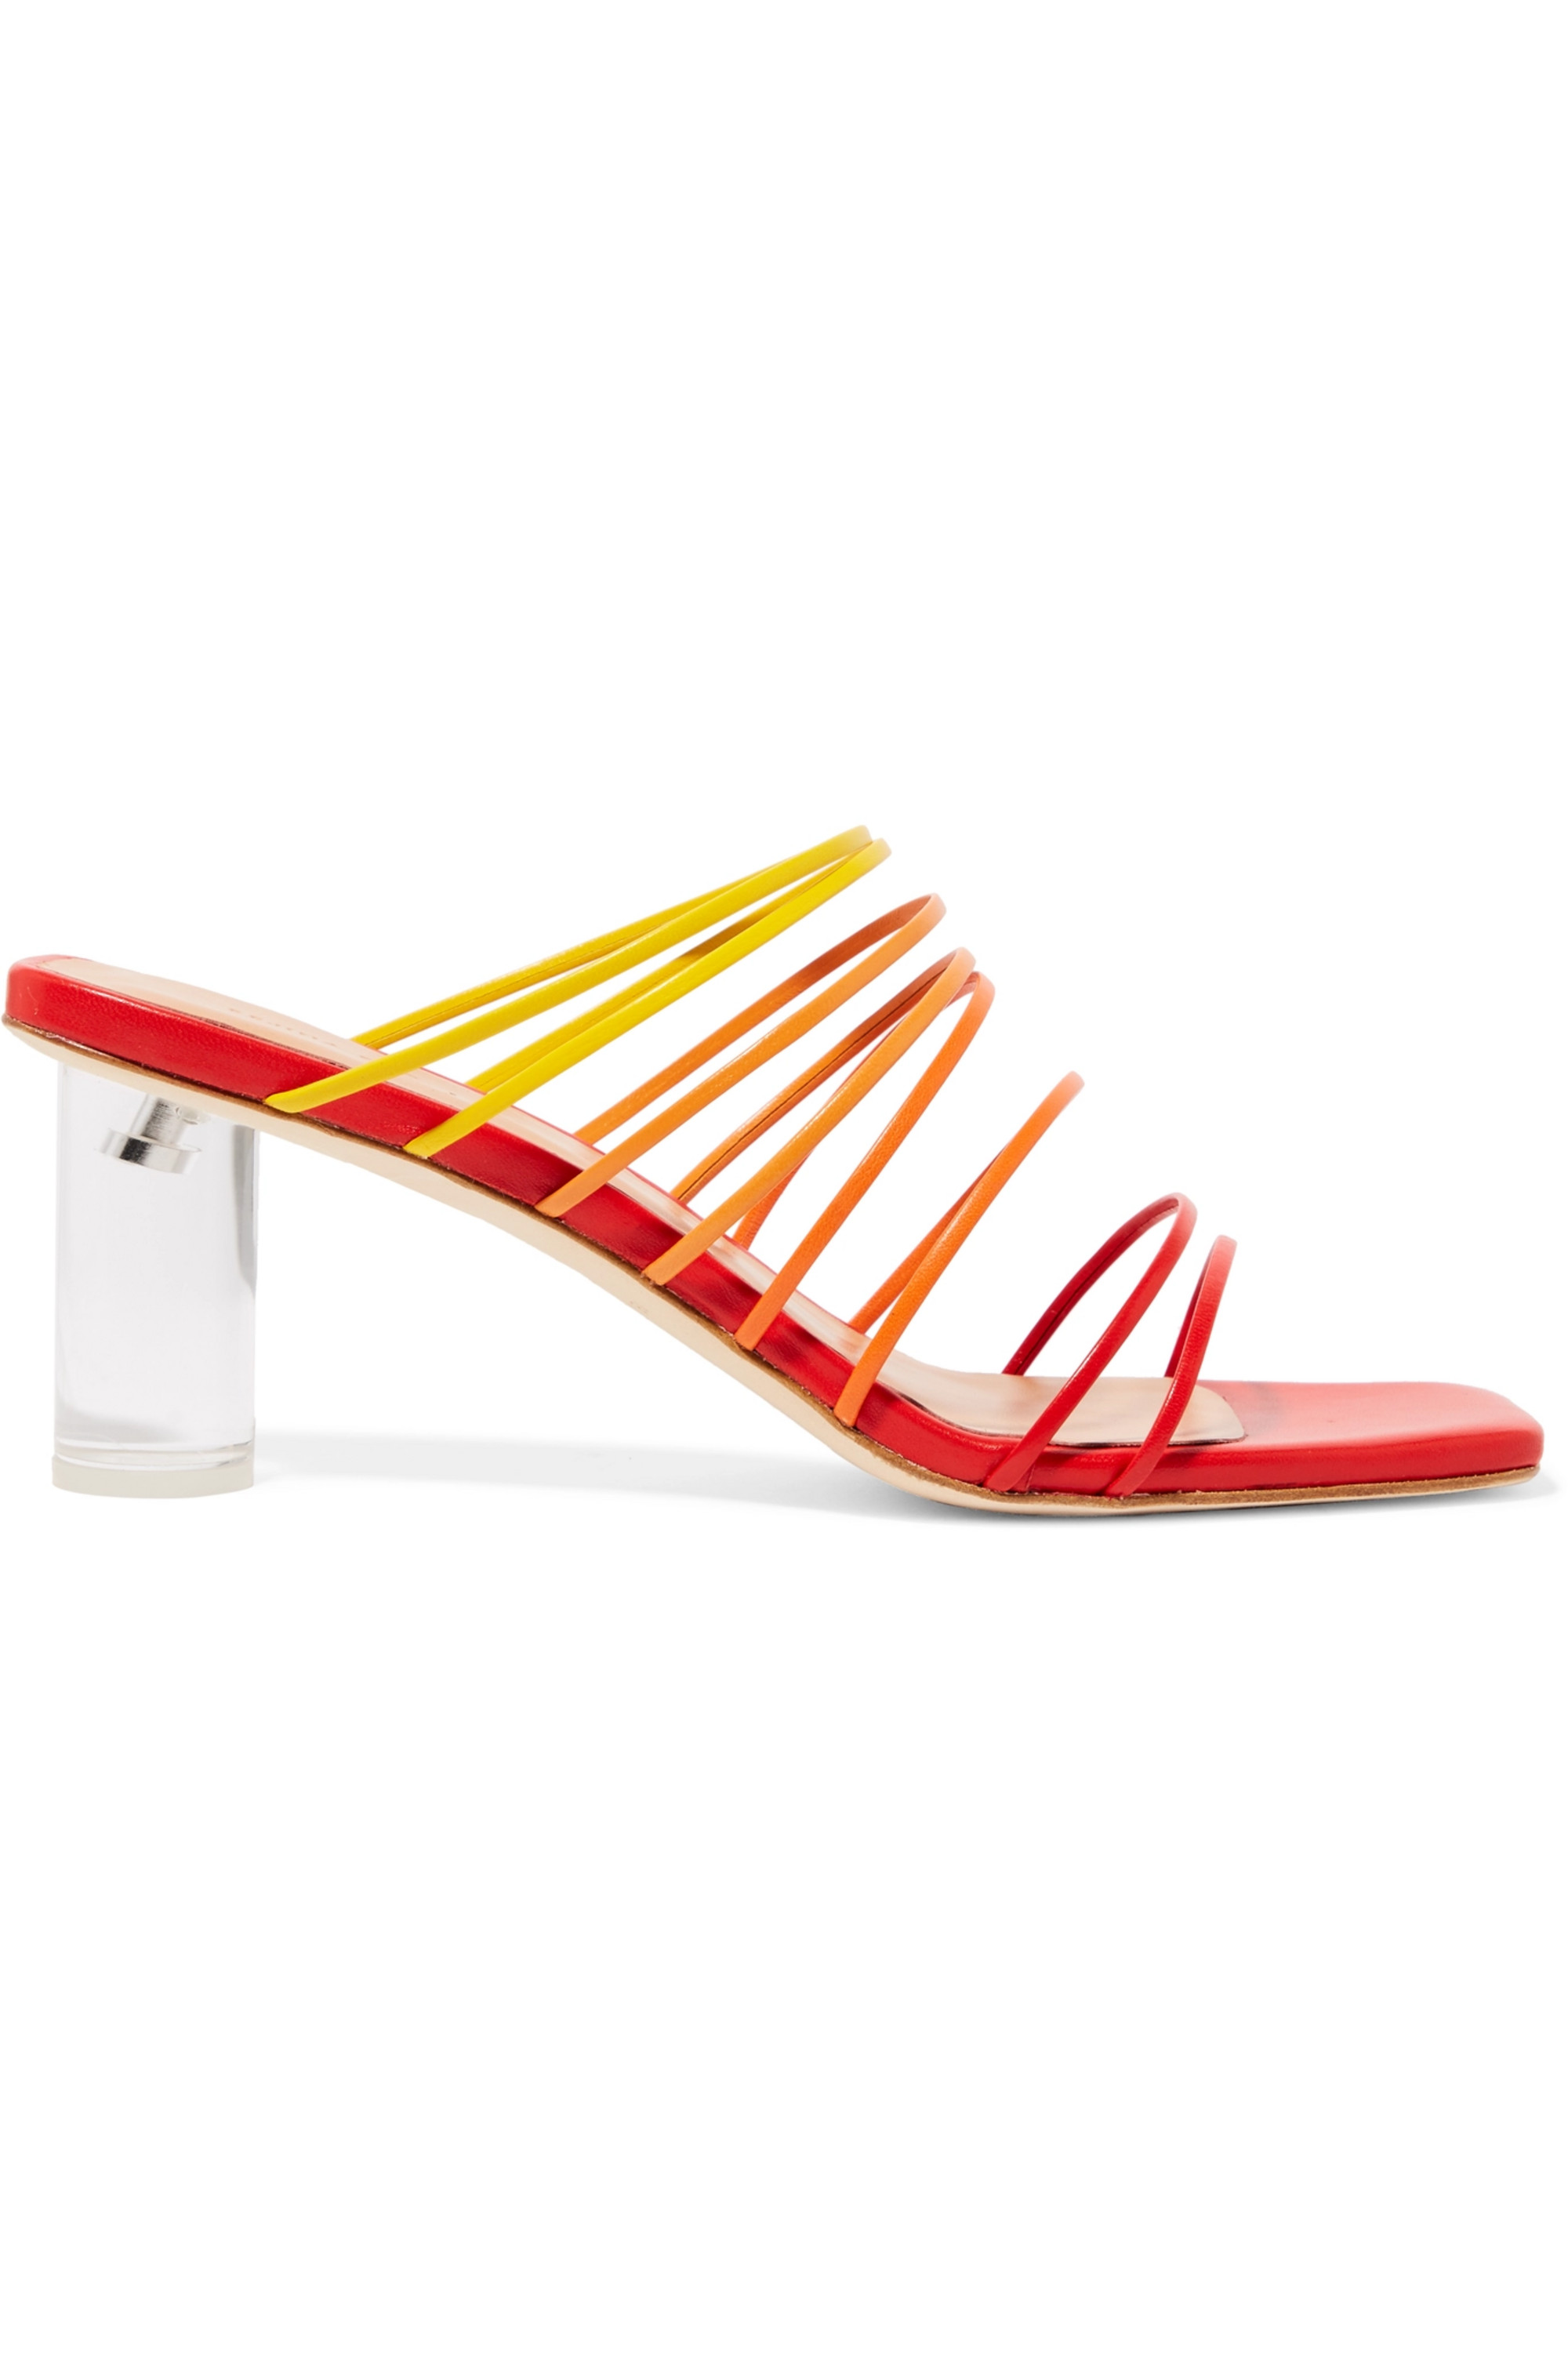 REJINA PYO Zoe leather and Perspex mules